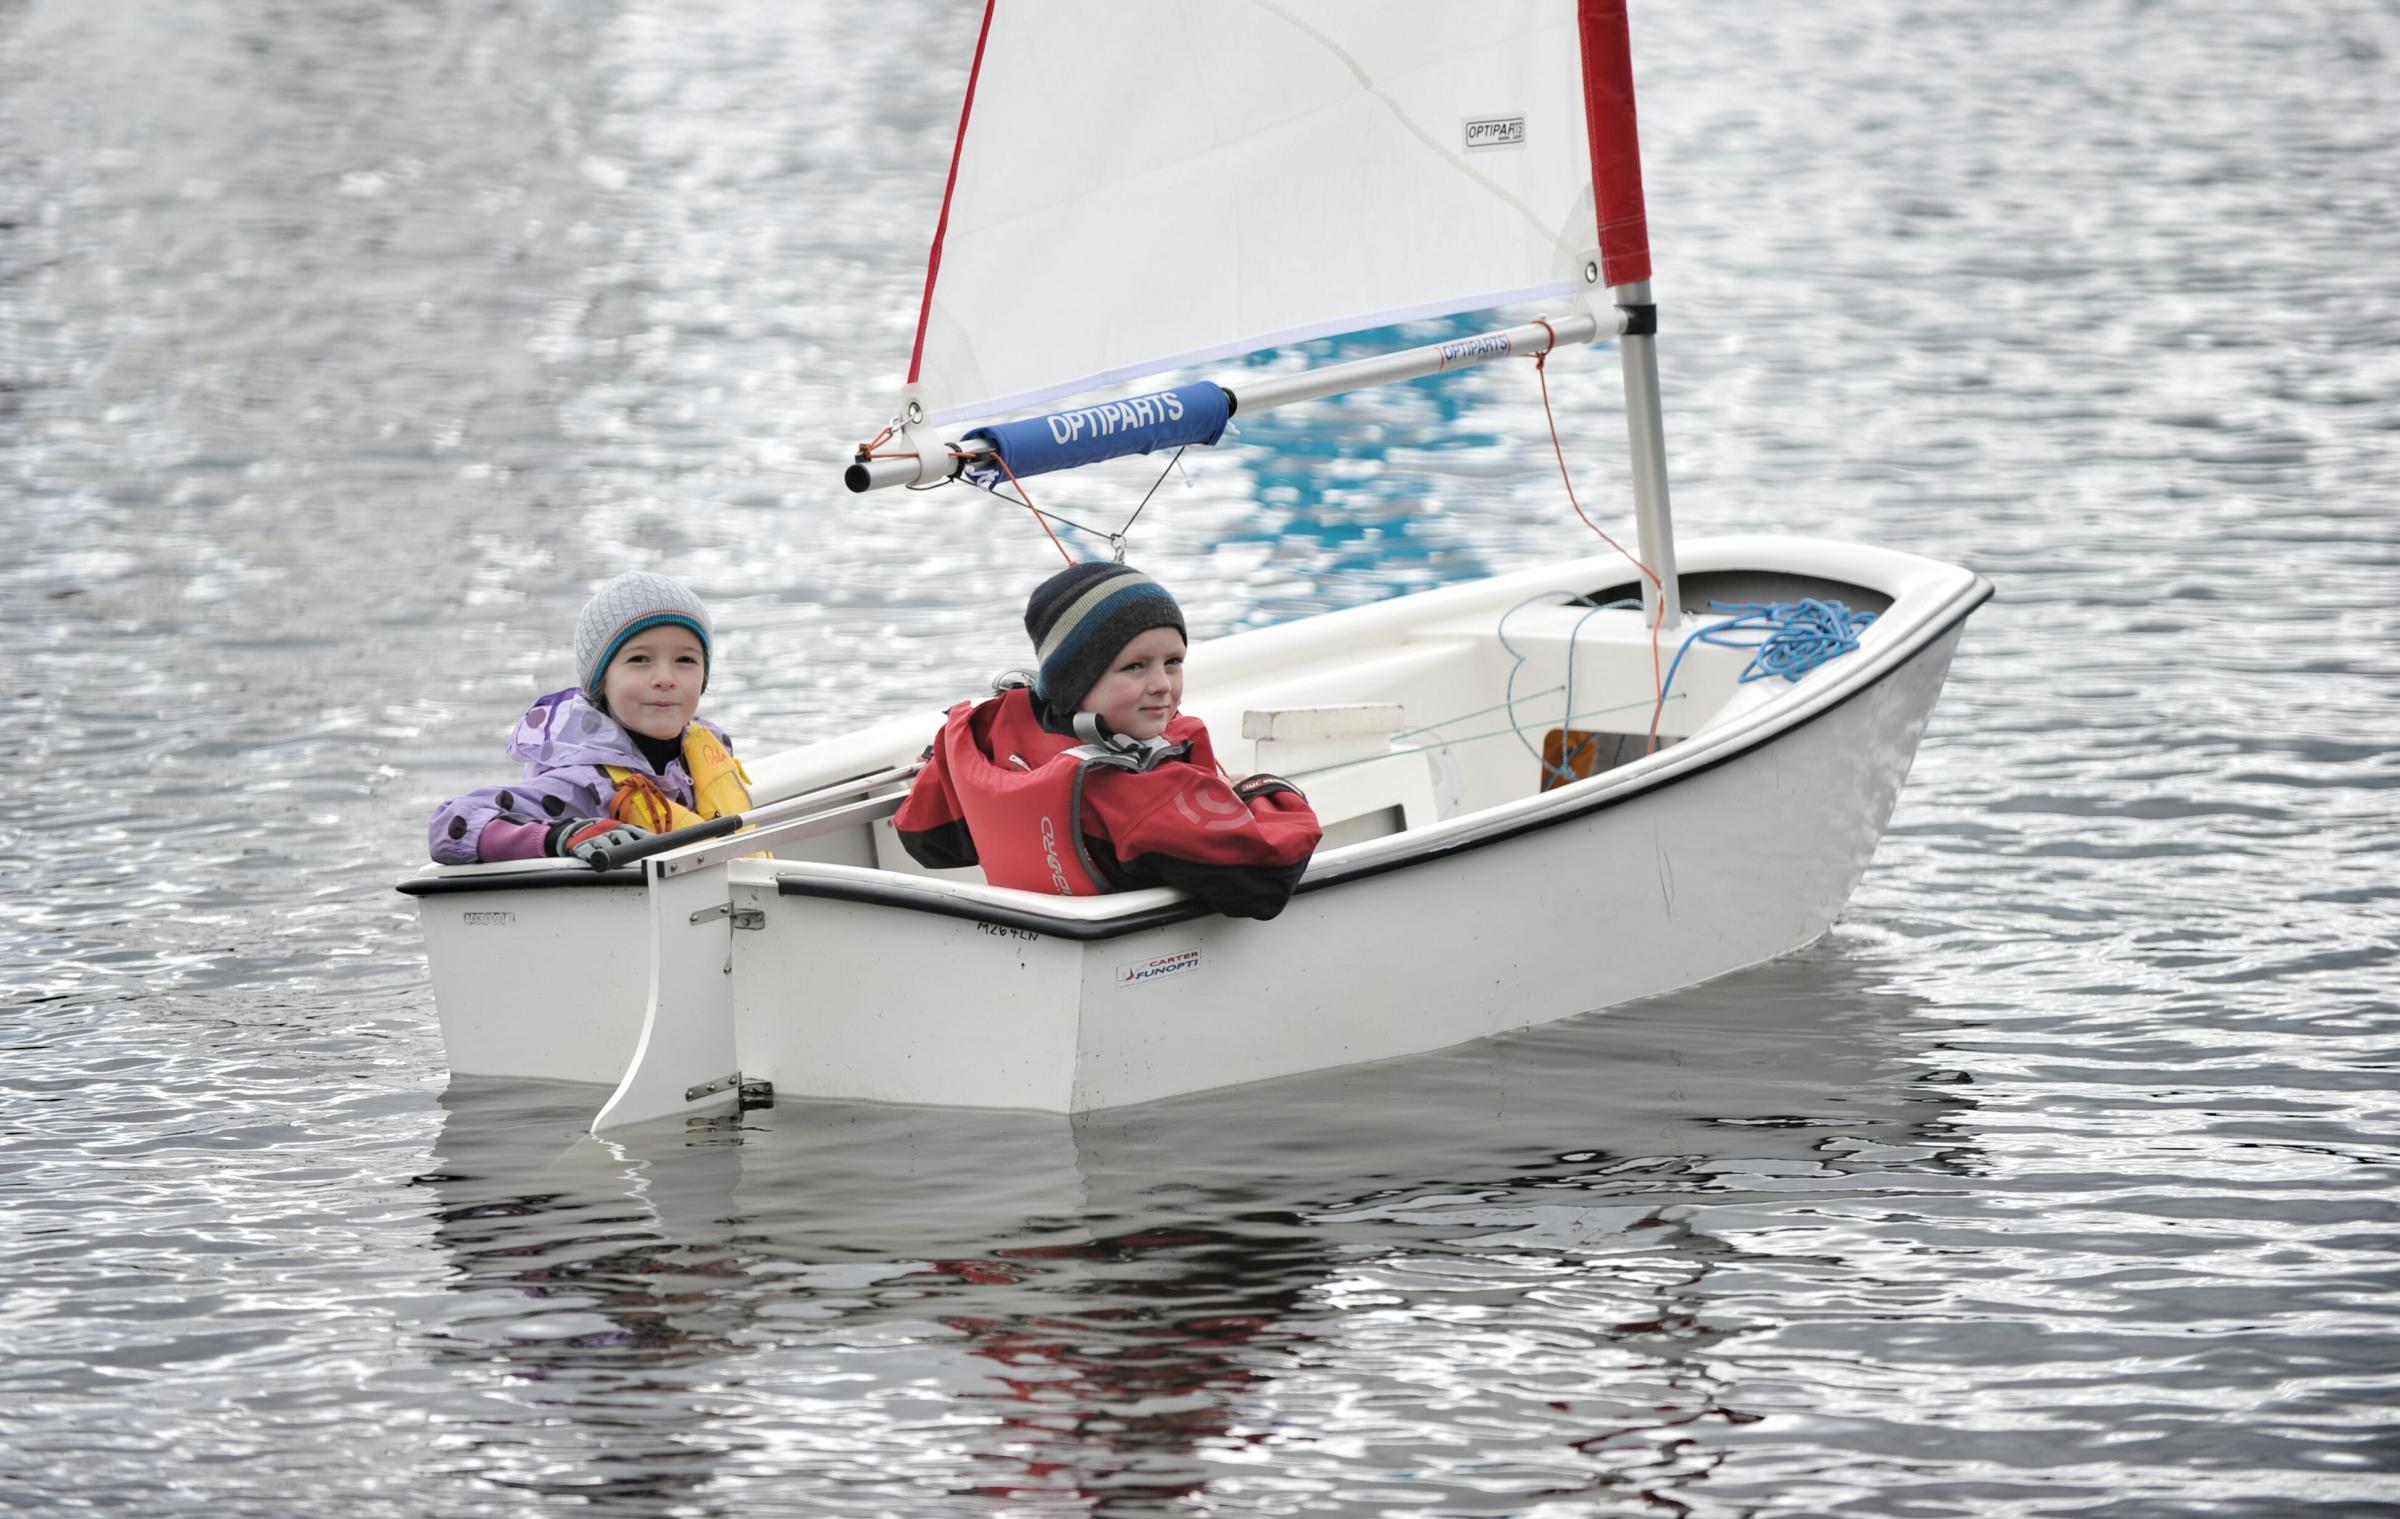 Harriet Wood and Daniel Cunningham, both 7, sail on their own at Jumbles Sailing Club's annual open day last year